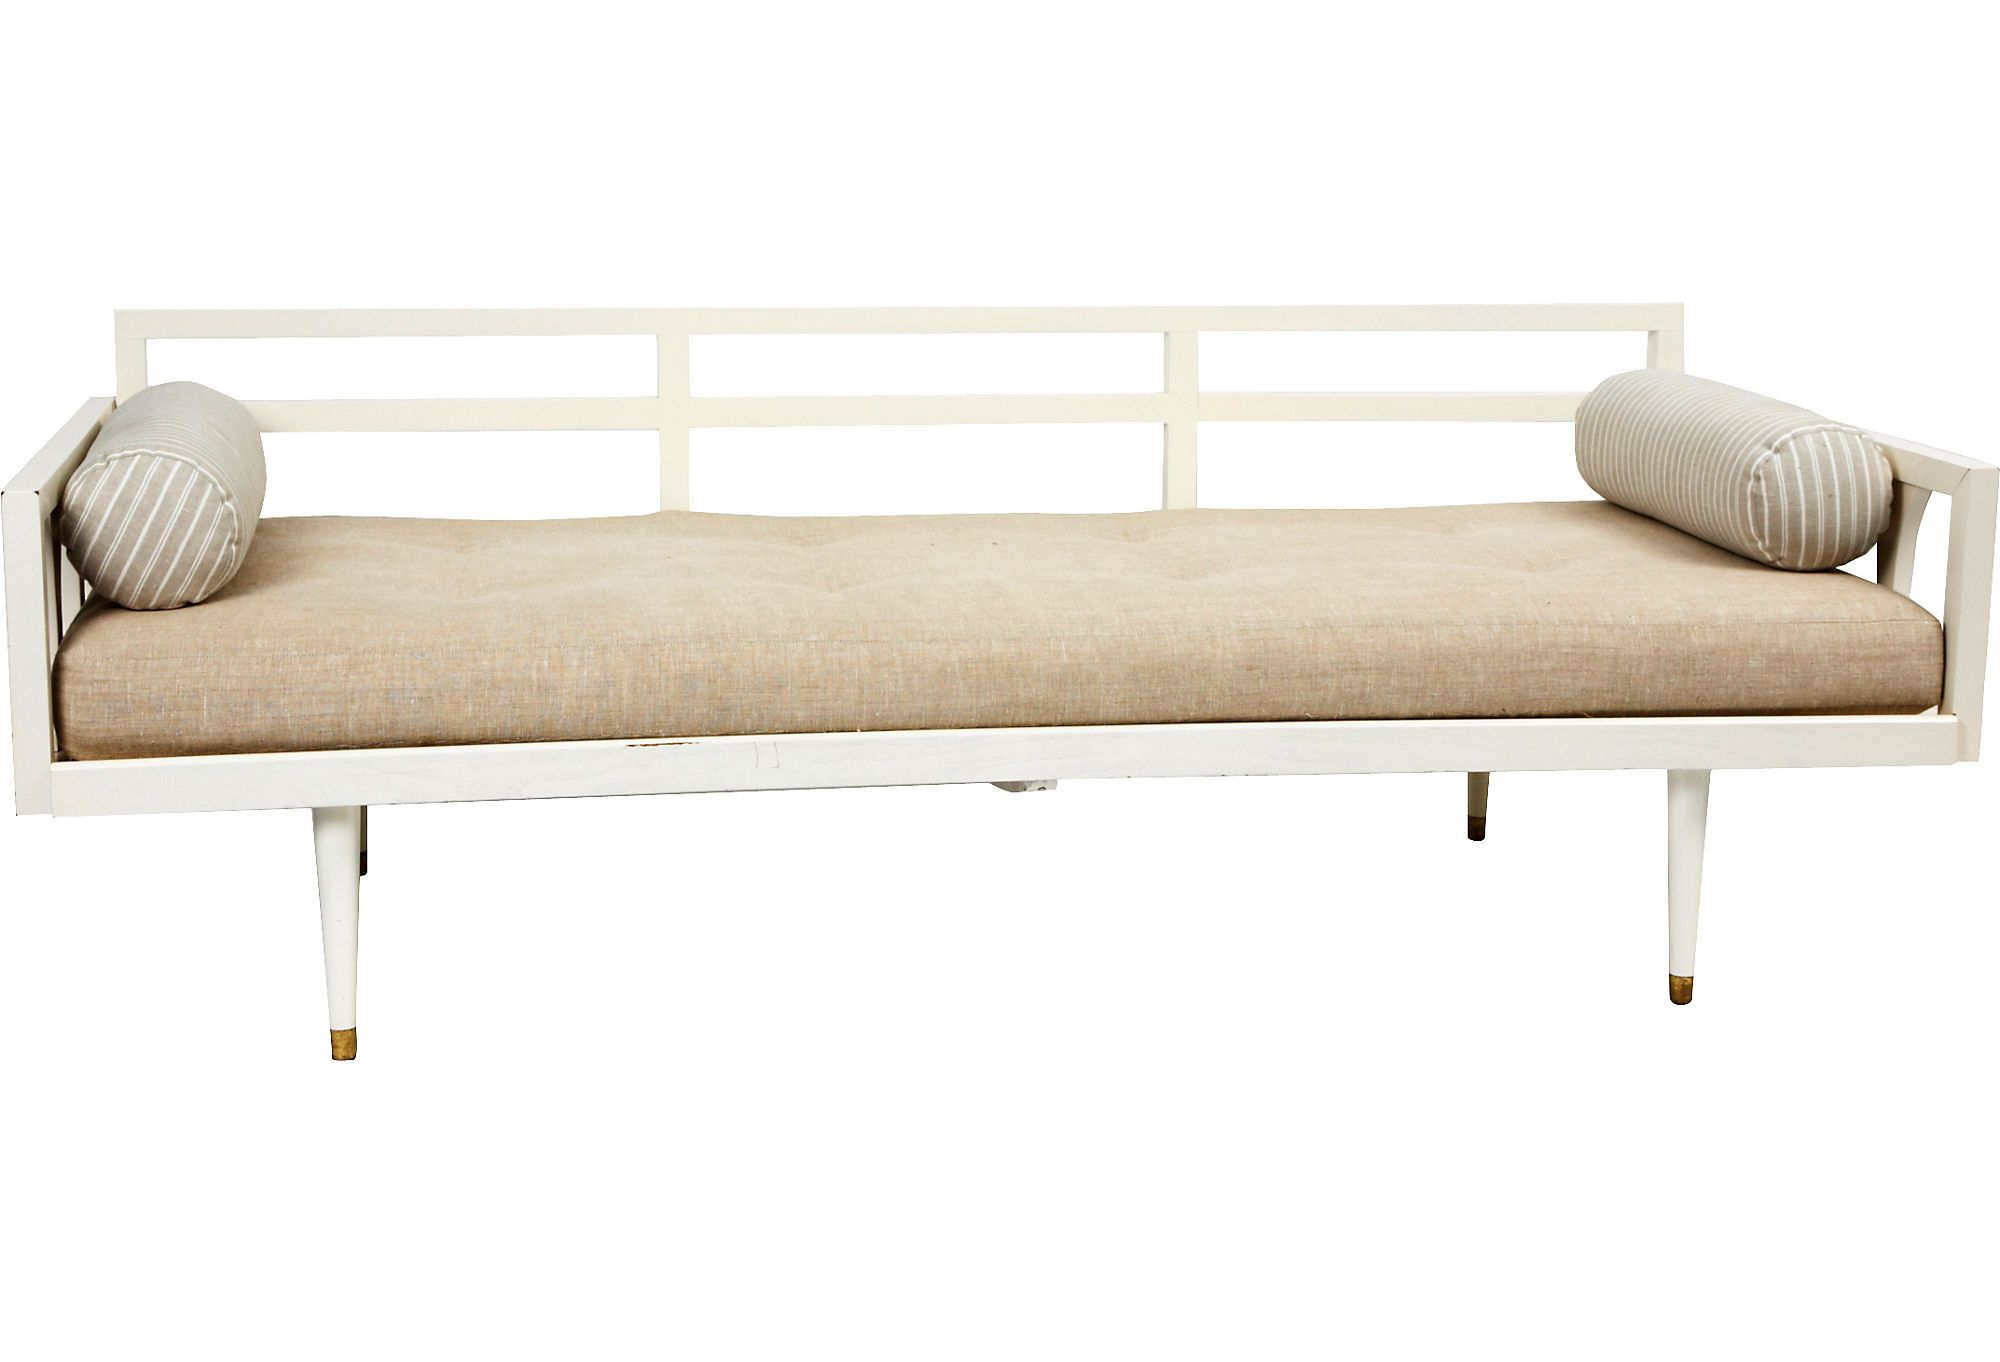 1960s Danish daybed with linen cushion with foam fill and bolsters. Painted  white wood frame  brass sabots on feet.  3599 at OKL. 41aec8822c